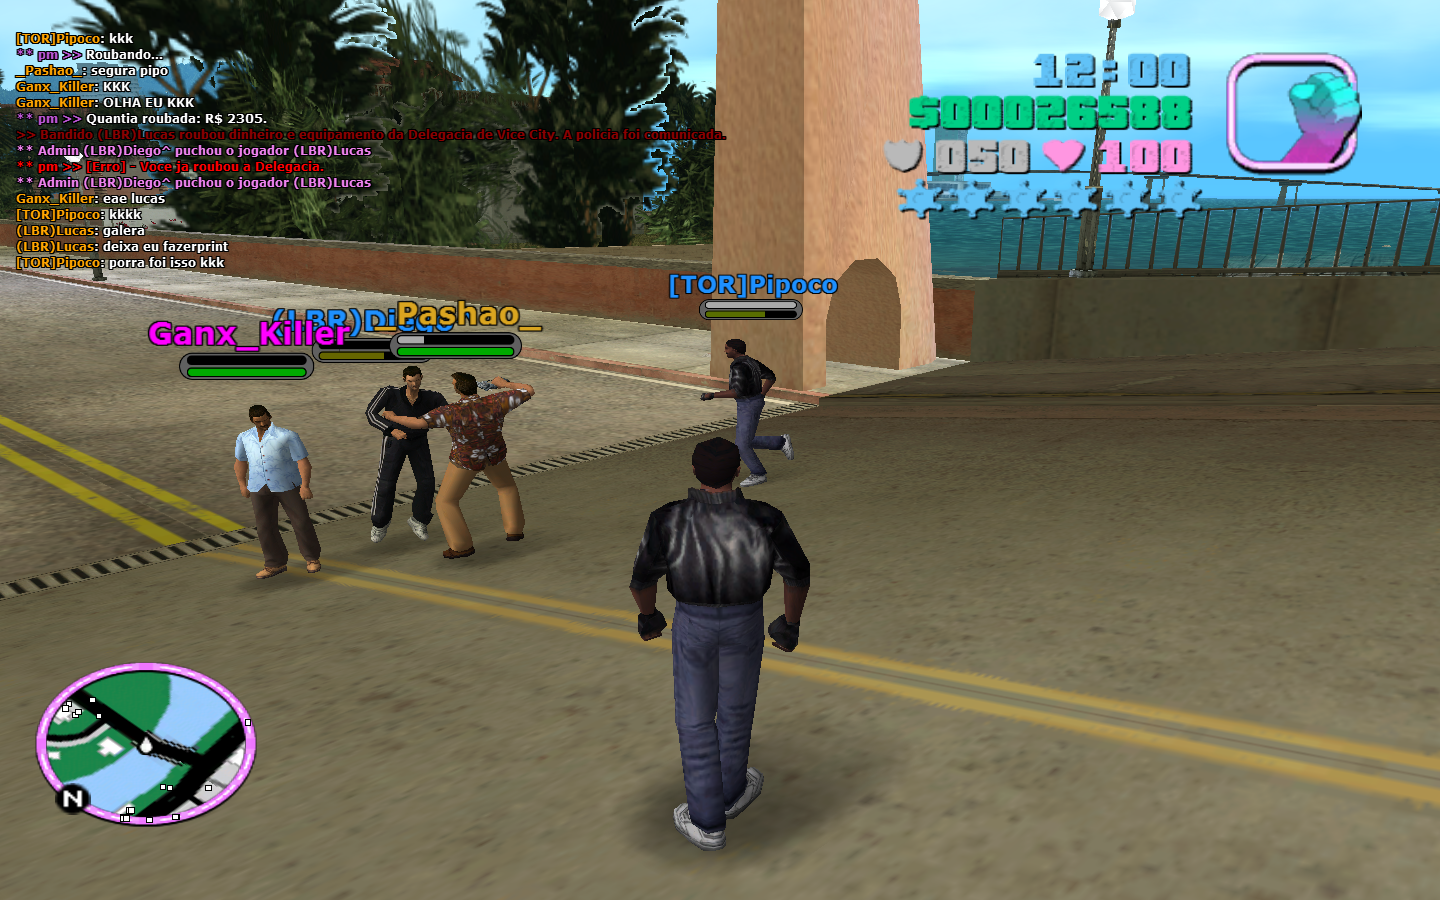 Gta vice city multiplayer android | City, Vice, Gta